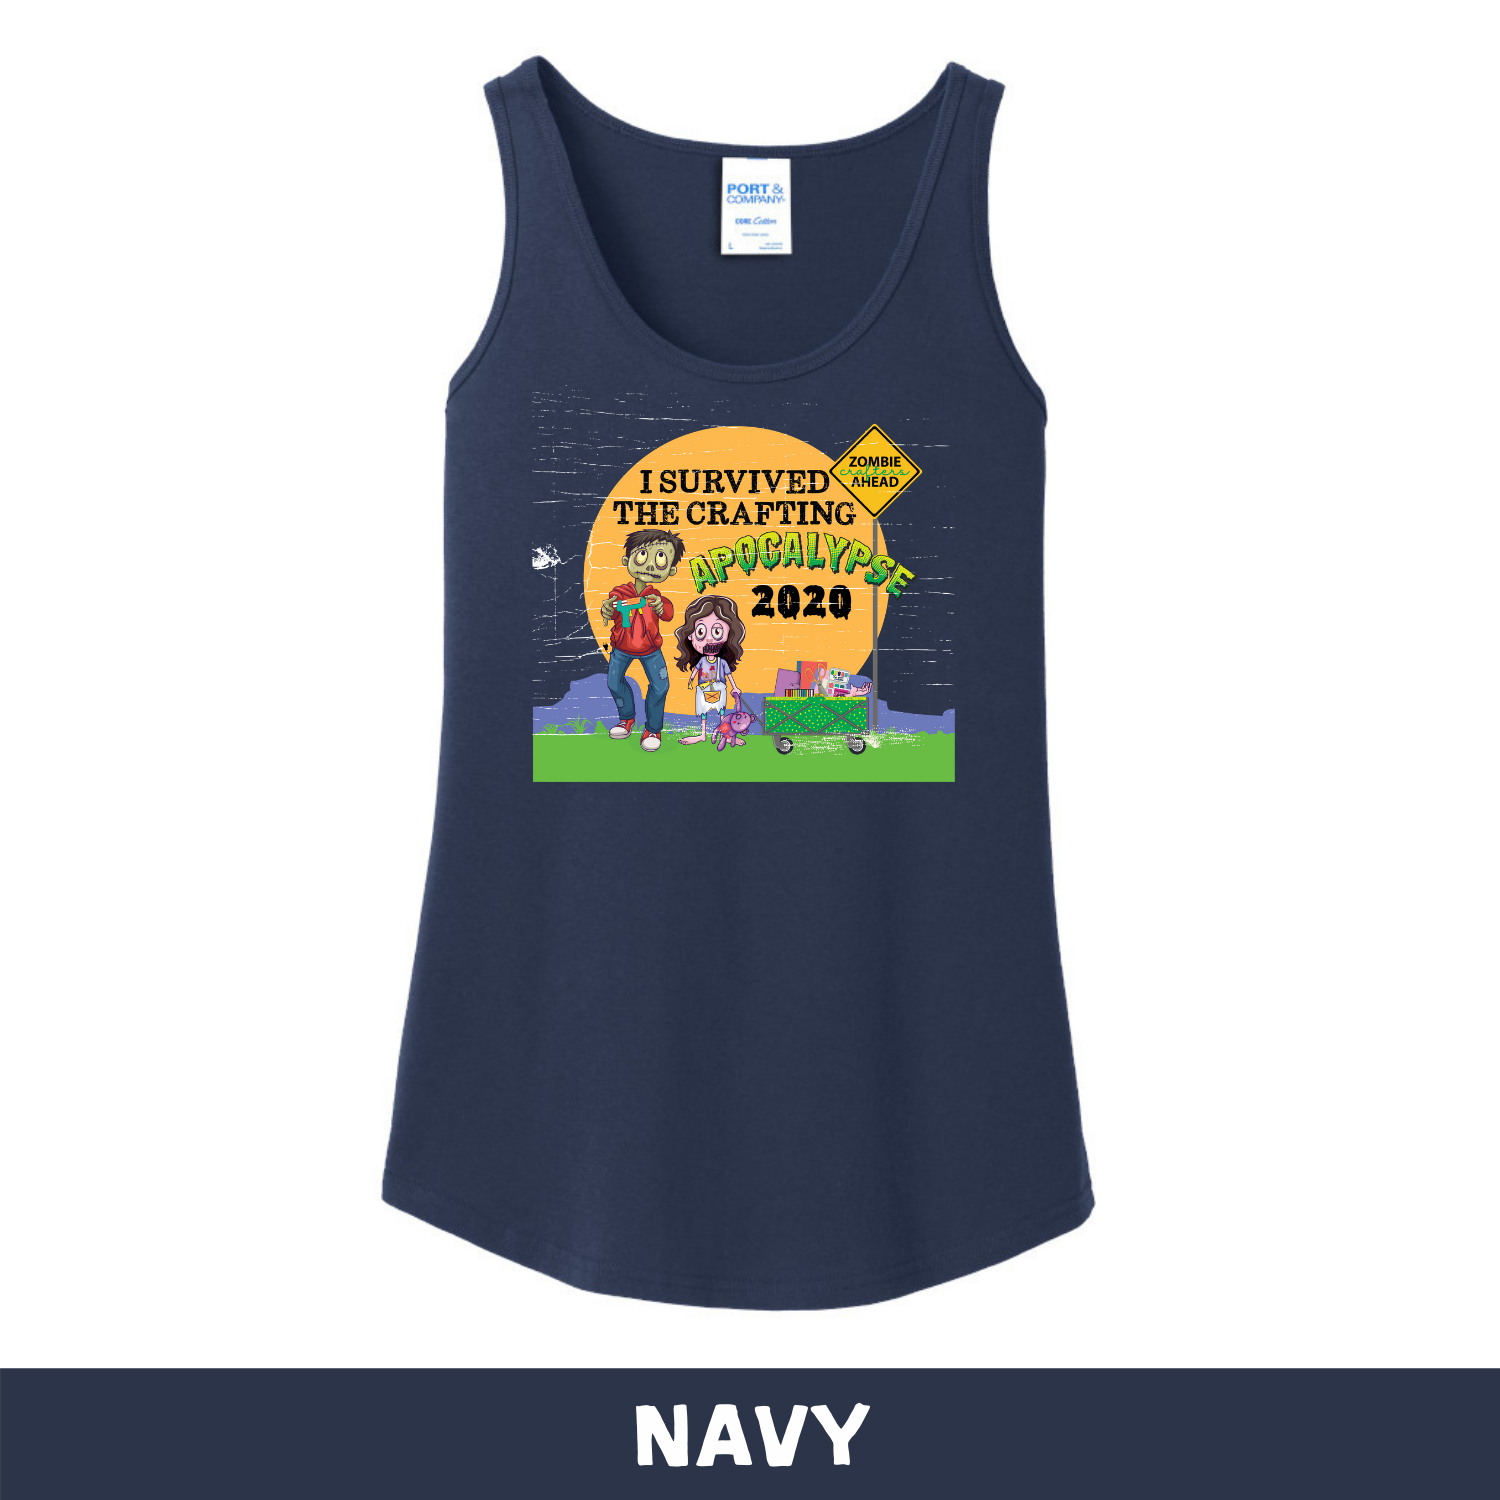 Navy -  Woman's Cut Tank Top - I Survived The 2020 Crafting Apocalypse